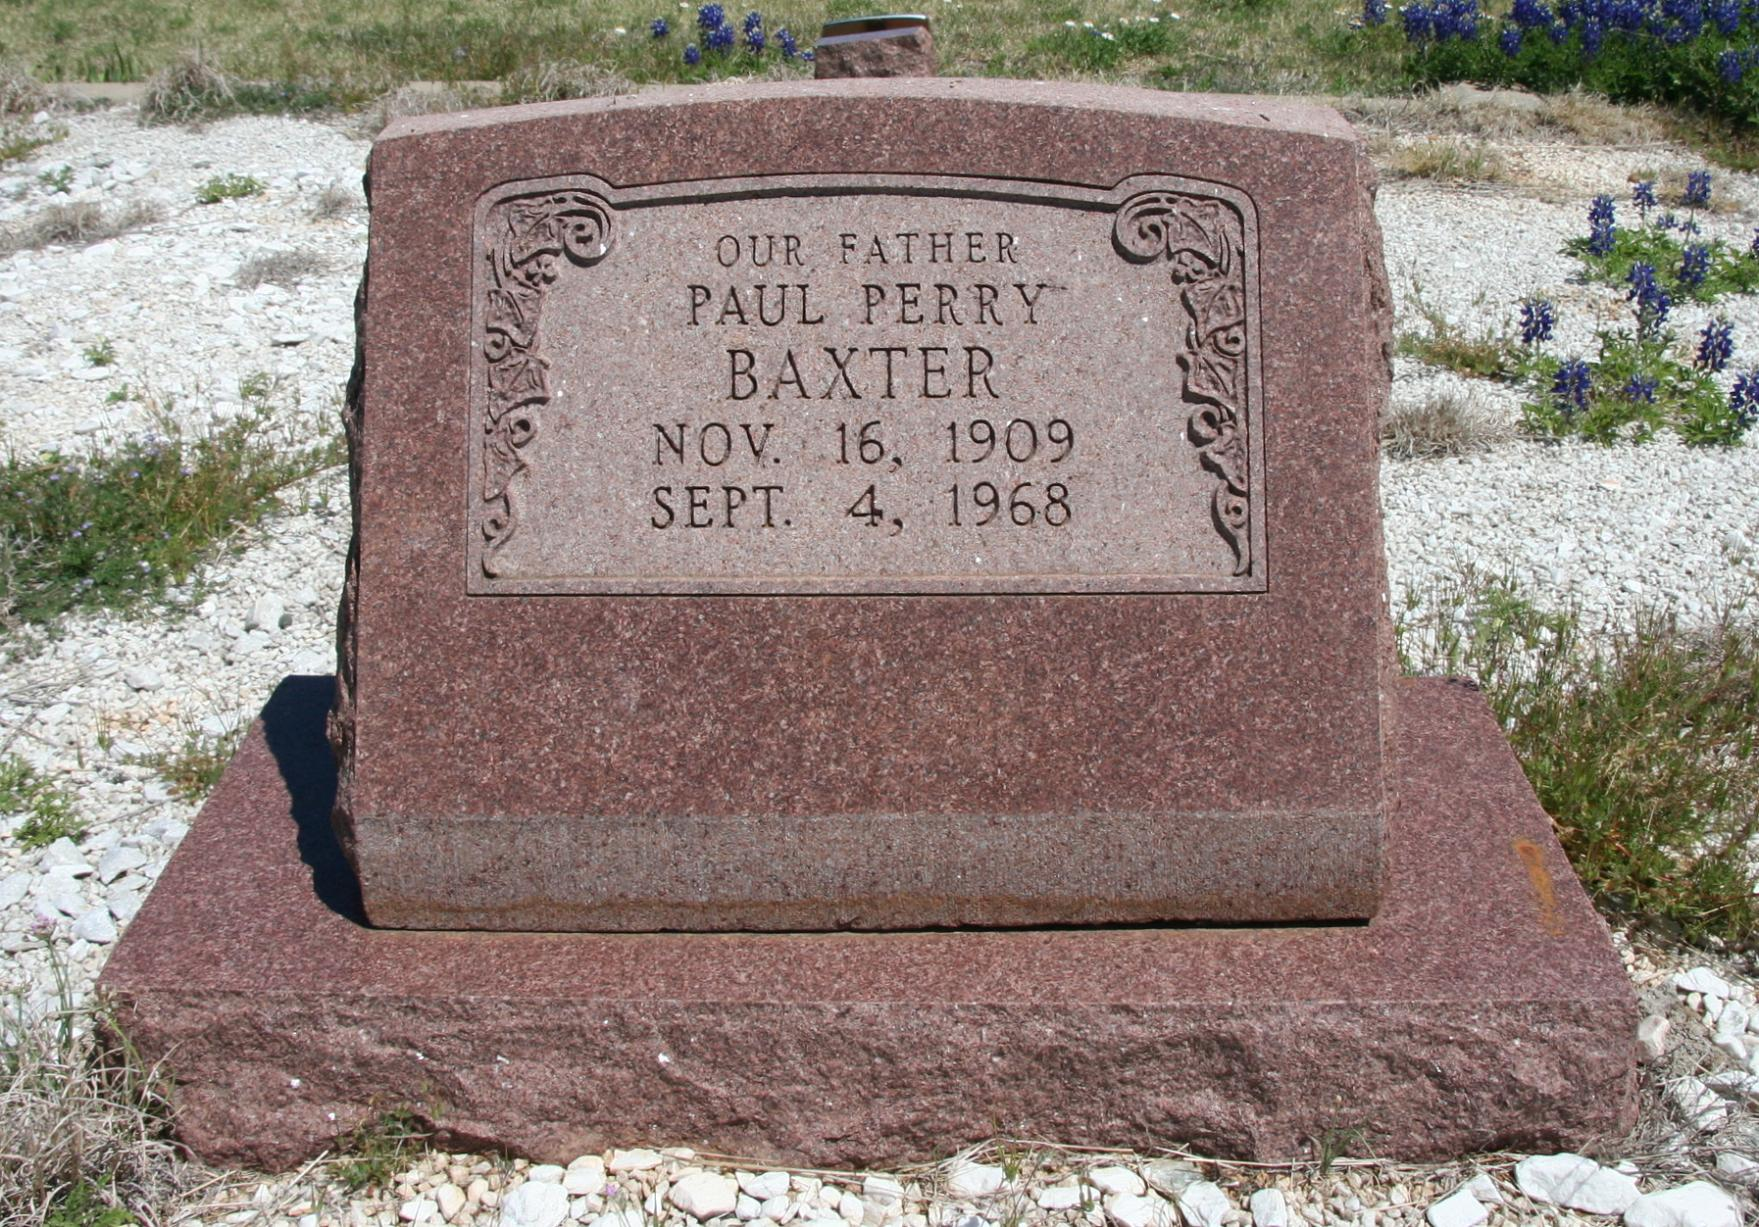 Paul Perry Baxter